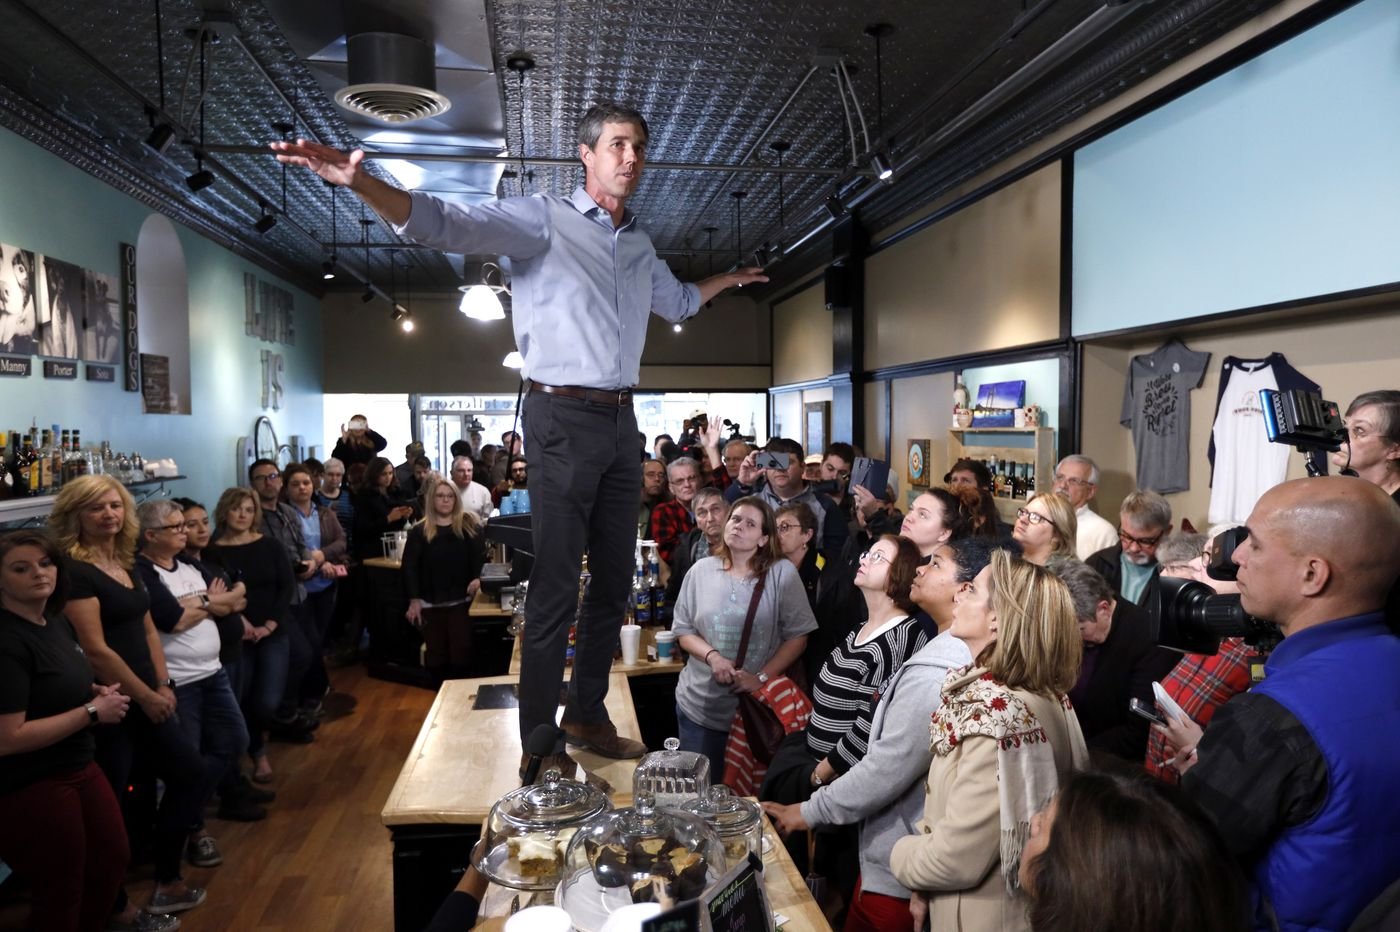 Beto O'Rourke Campaigns on Bringing Tinder to Rural Populations